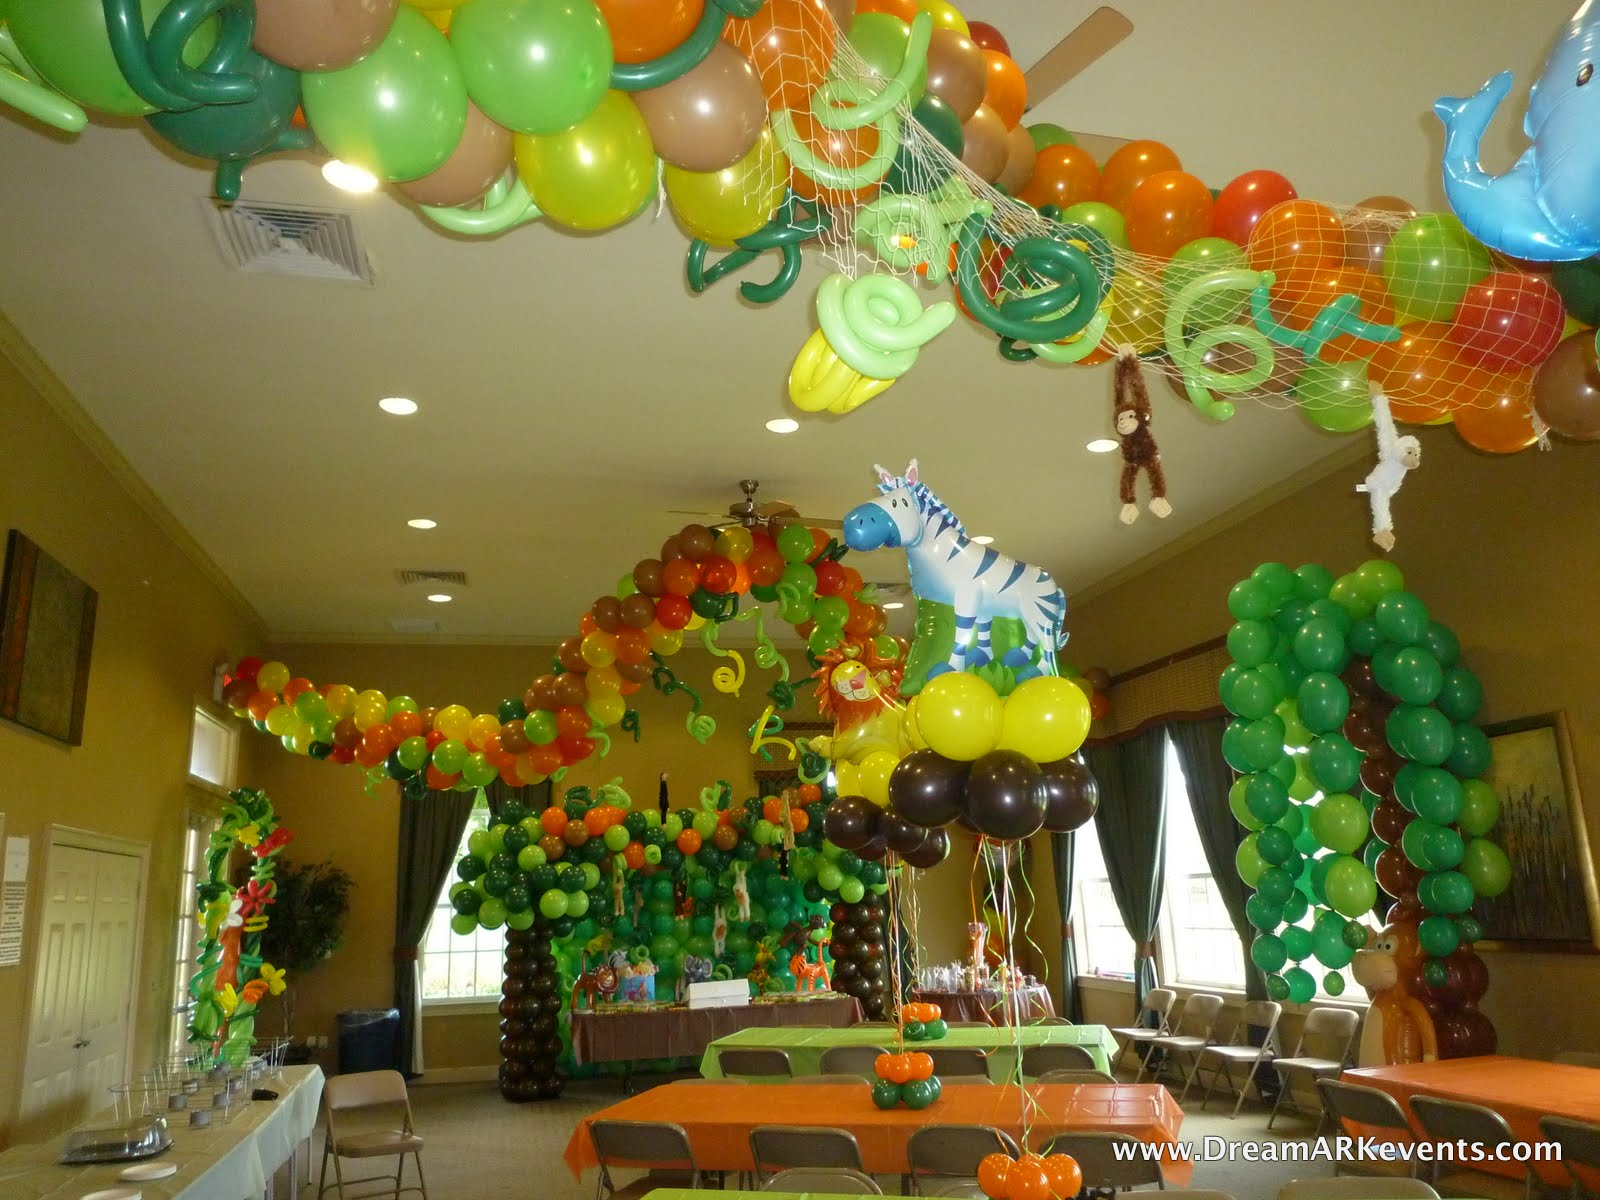 DreamARK Events Blog Tropical Jungle Birthday Party